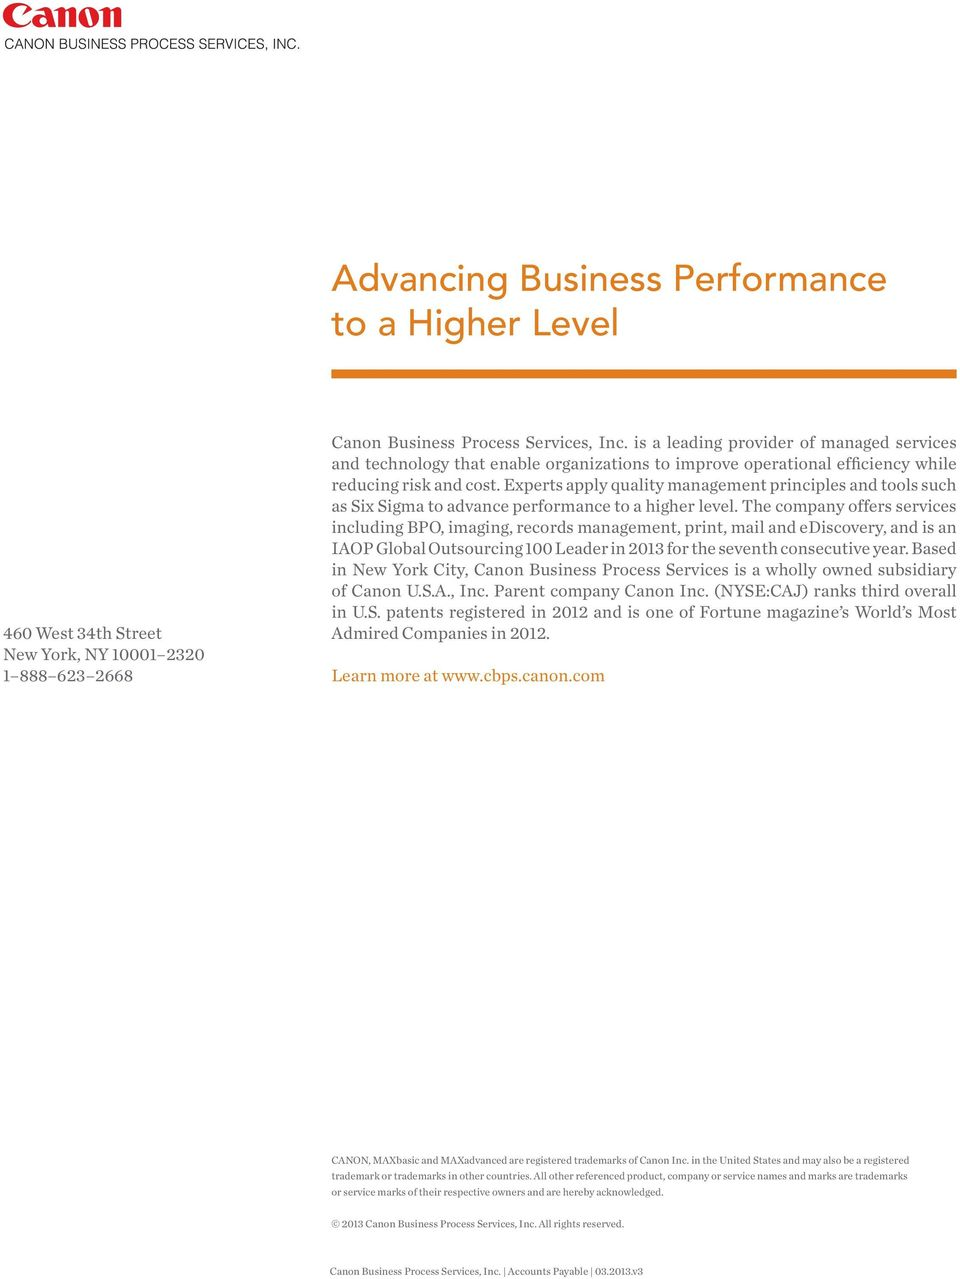 Experts apply quality management principles and tools such as Six Sigma to advance performance to a higher level.